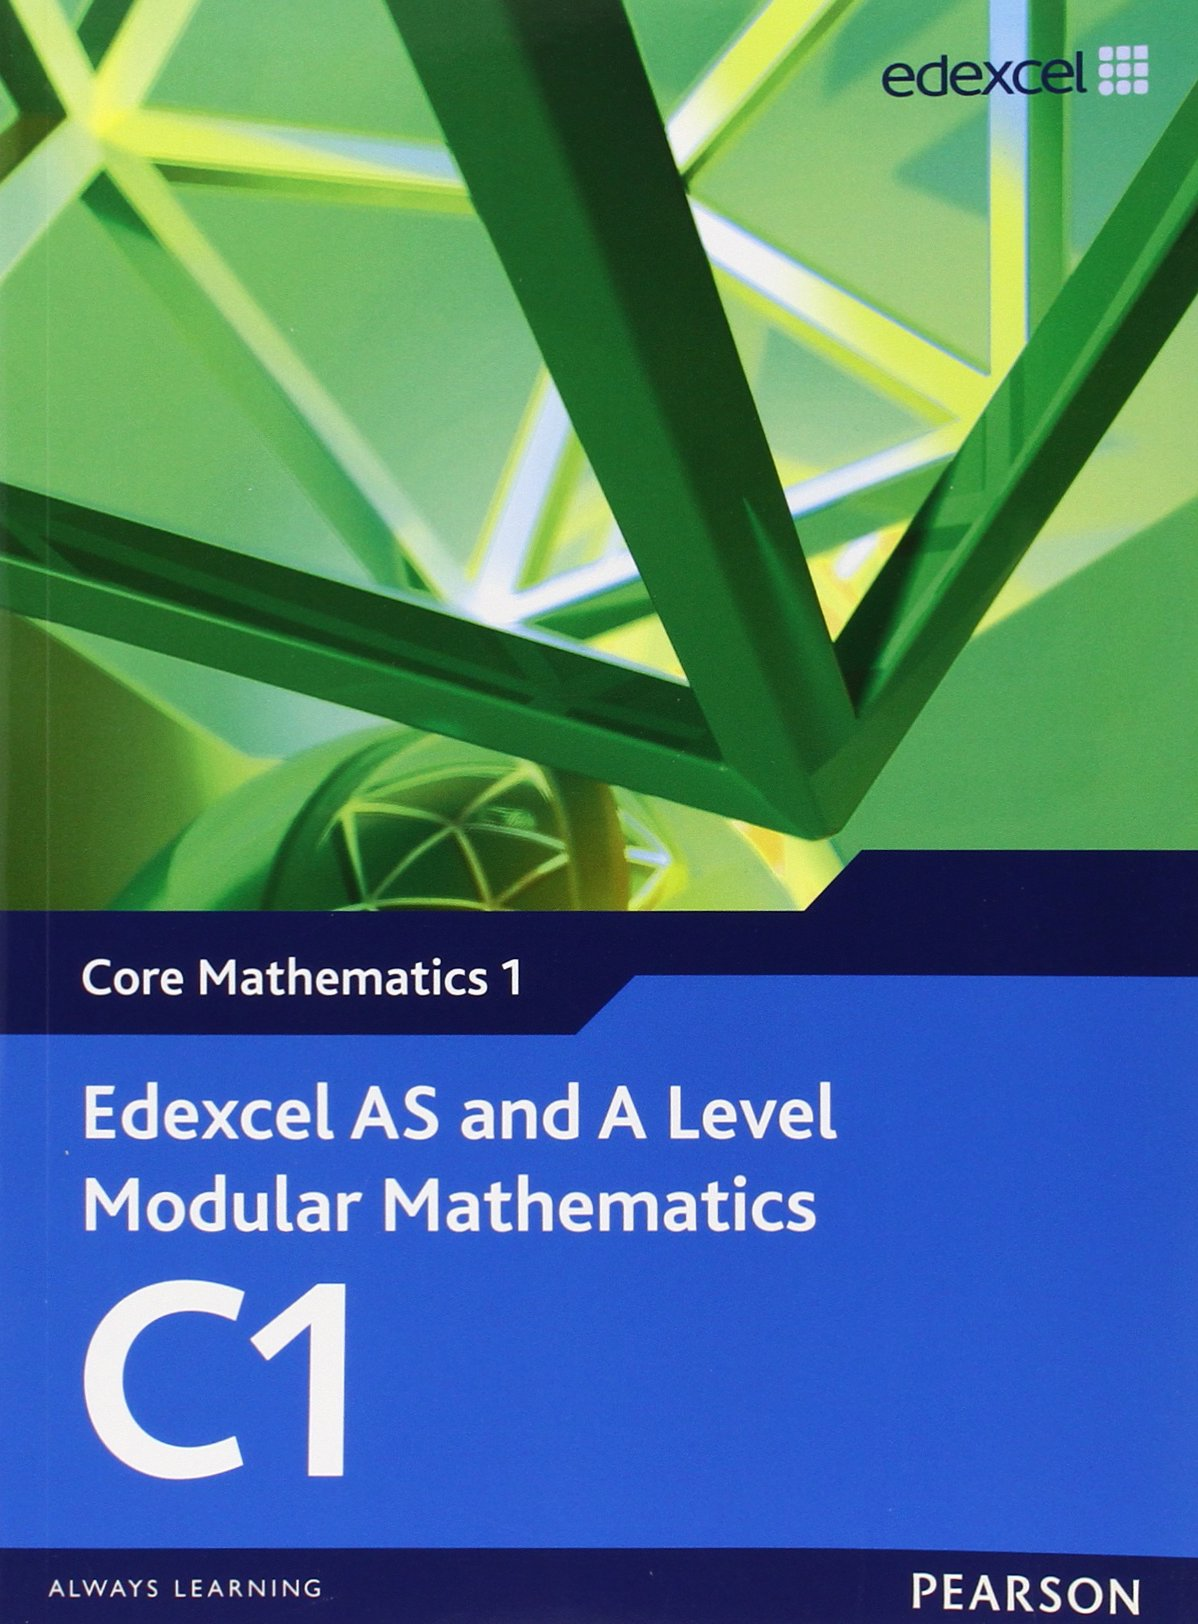 A Level Maths Ebook